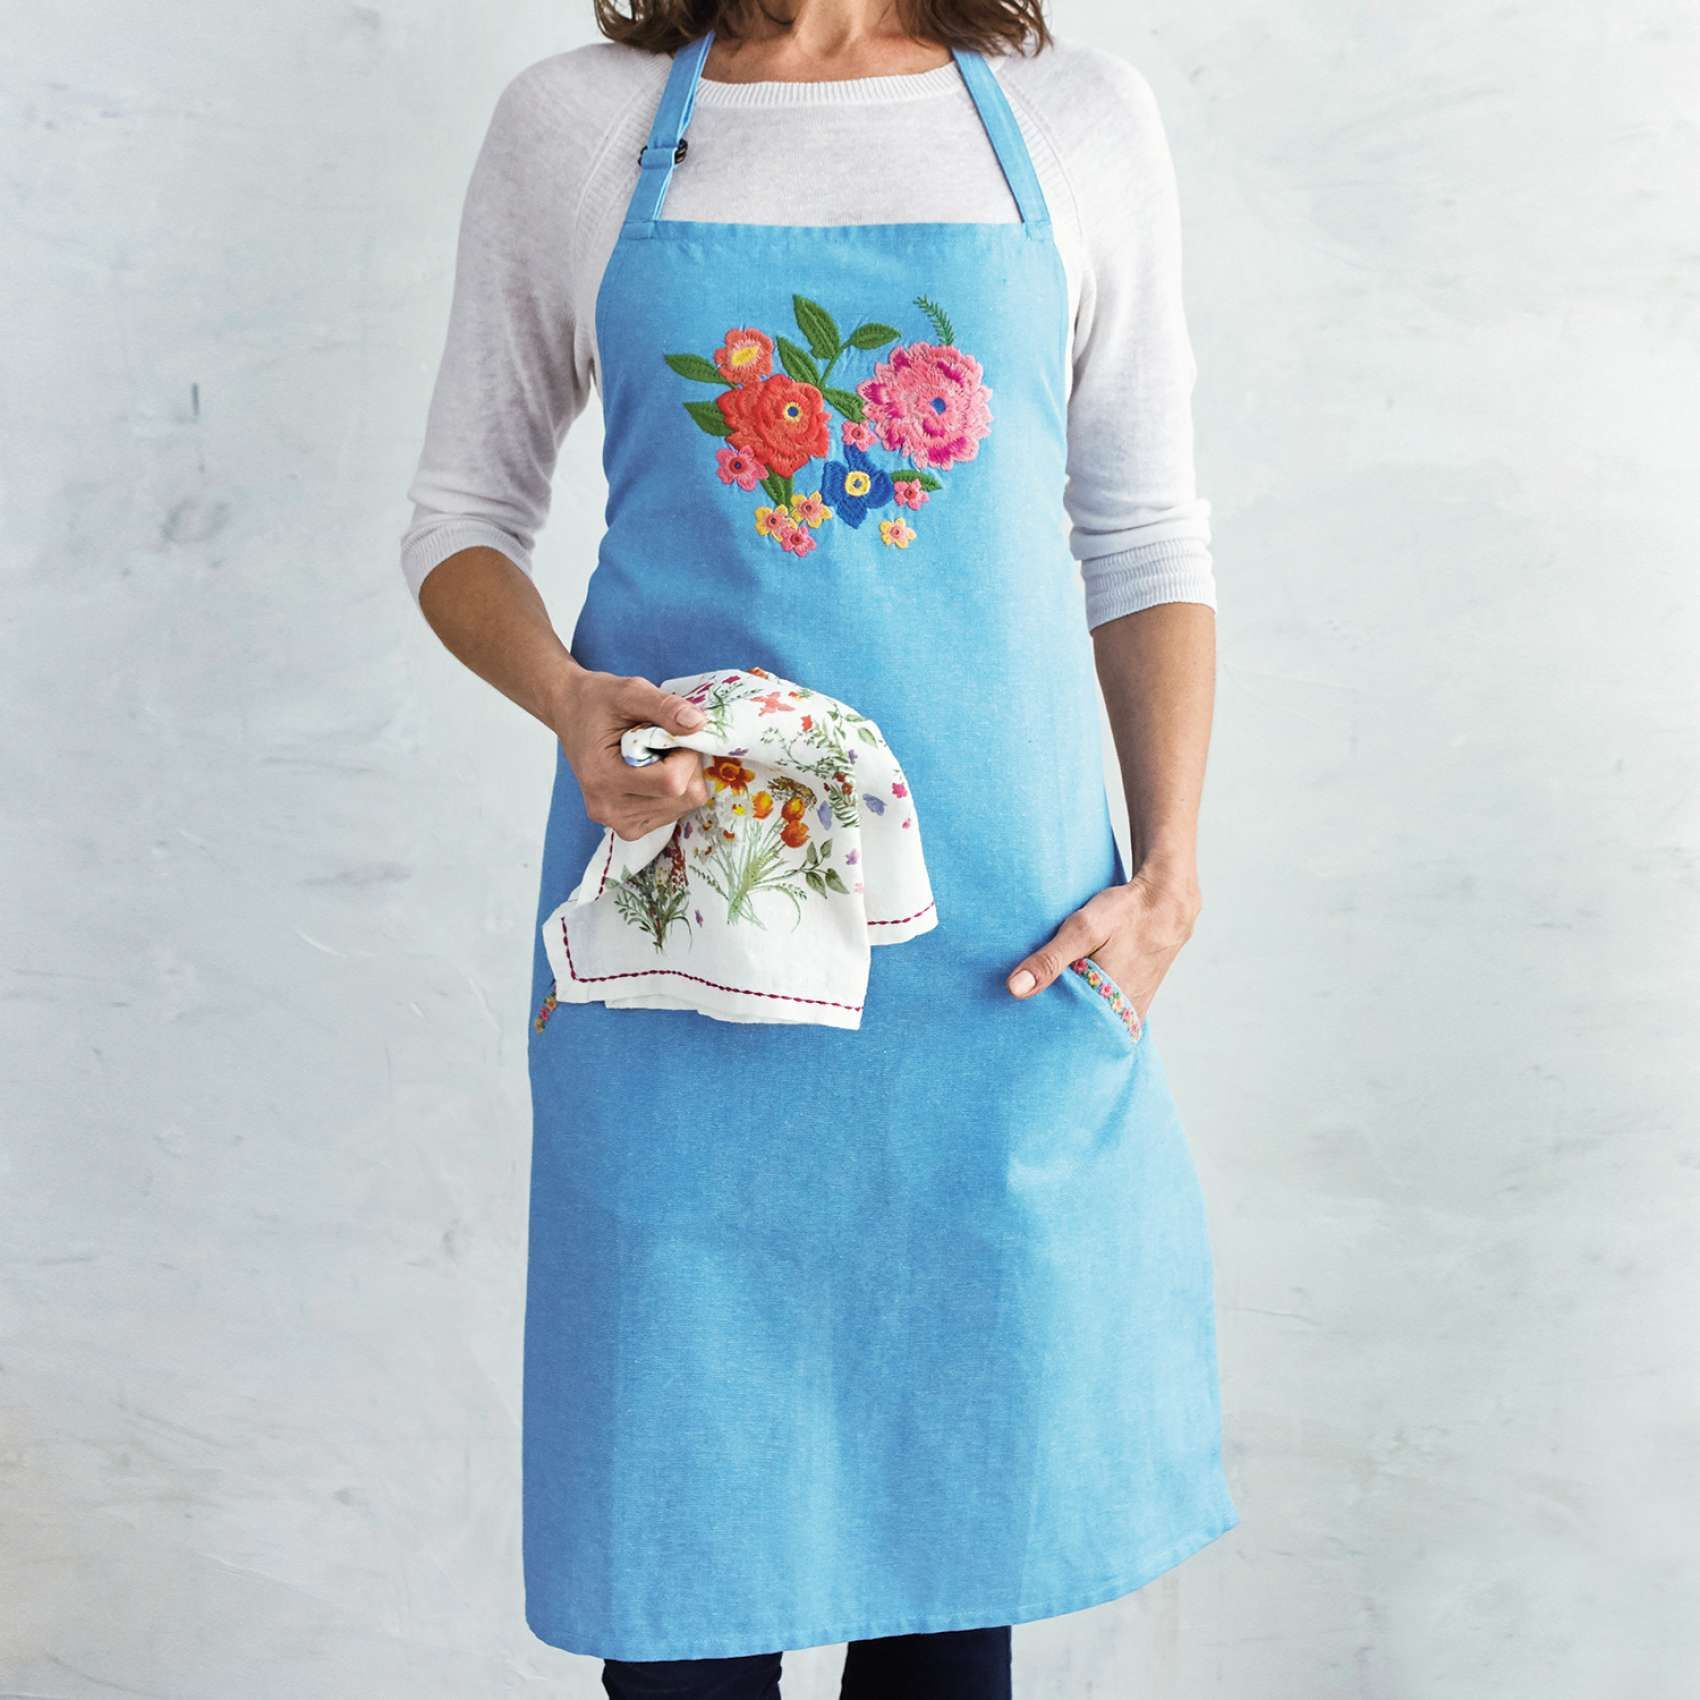 Floral Embroidered Chambray Apron Sur La Table C P